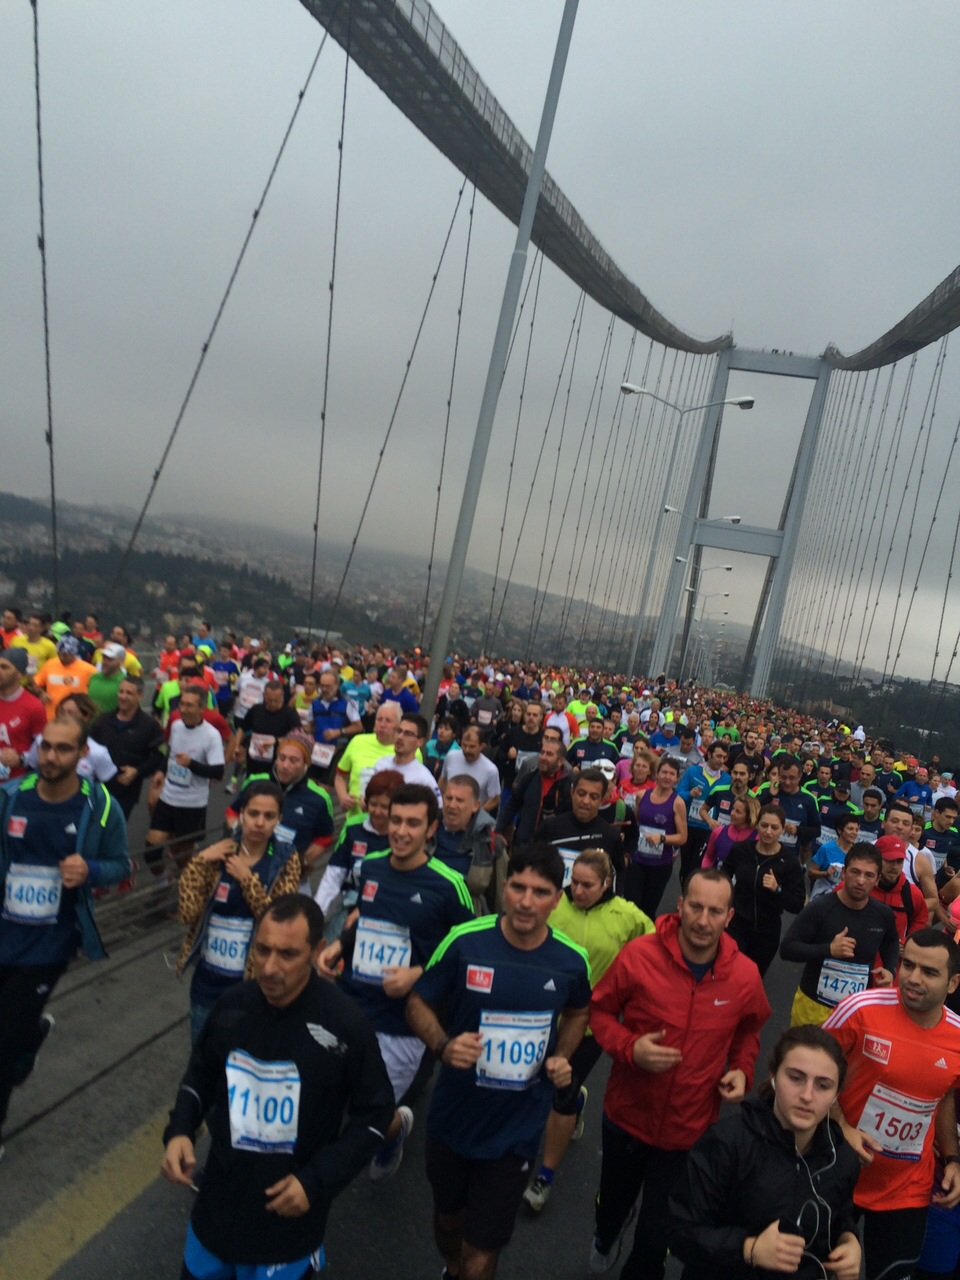 This picture resonates deeply with my time abroad. I ran the Istanbul Marathon almost a year ago today and still feel a sense of excitement from the experience. The marathon is the only time of the year that one can cross the Bosphorus straight on foot, and it is the only marathon that crosses two continents, Europe and Asia. It was a pretty surreal moment when you are out on the Bosphorus bridge with tens of thousands of people and could actually feel the bridge swaying from the weight of all the people running.